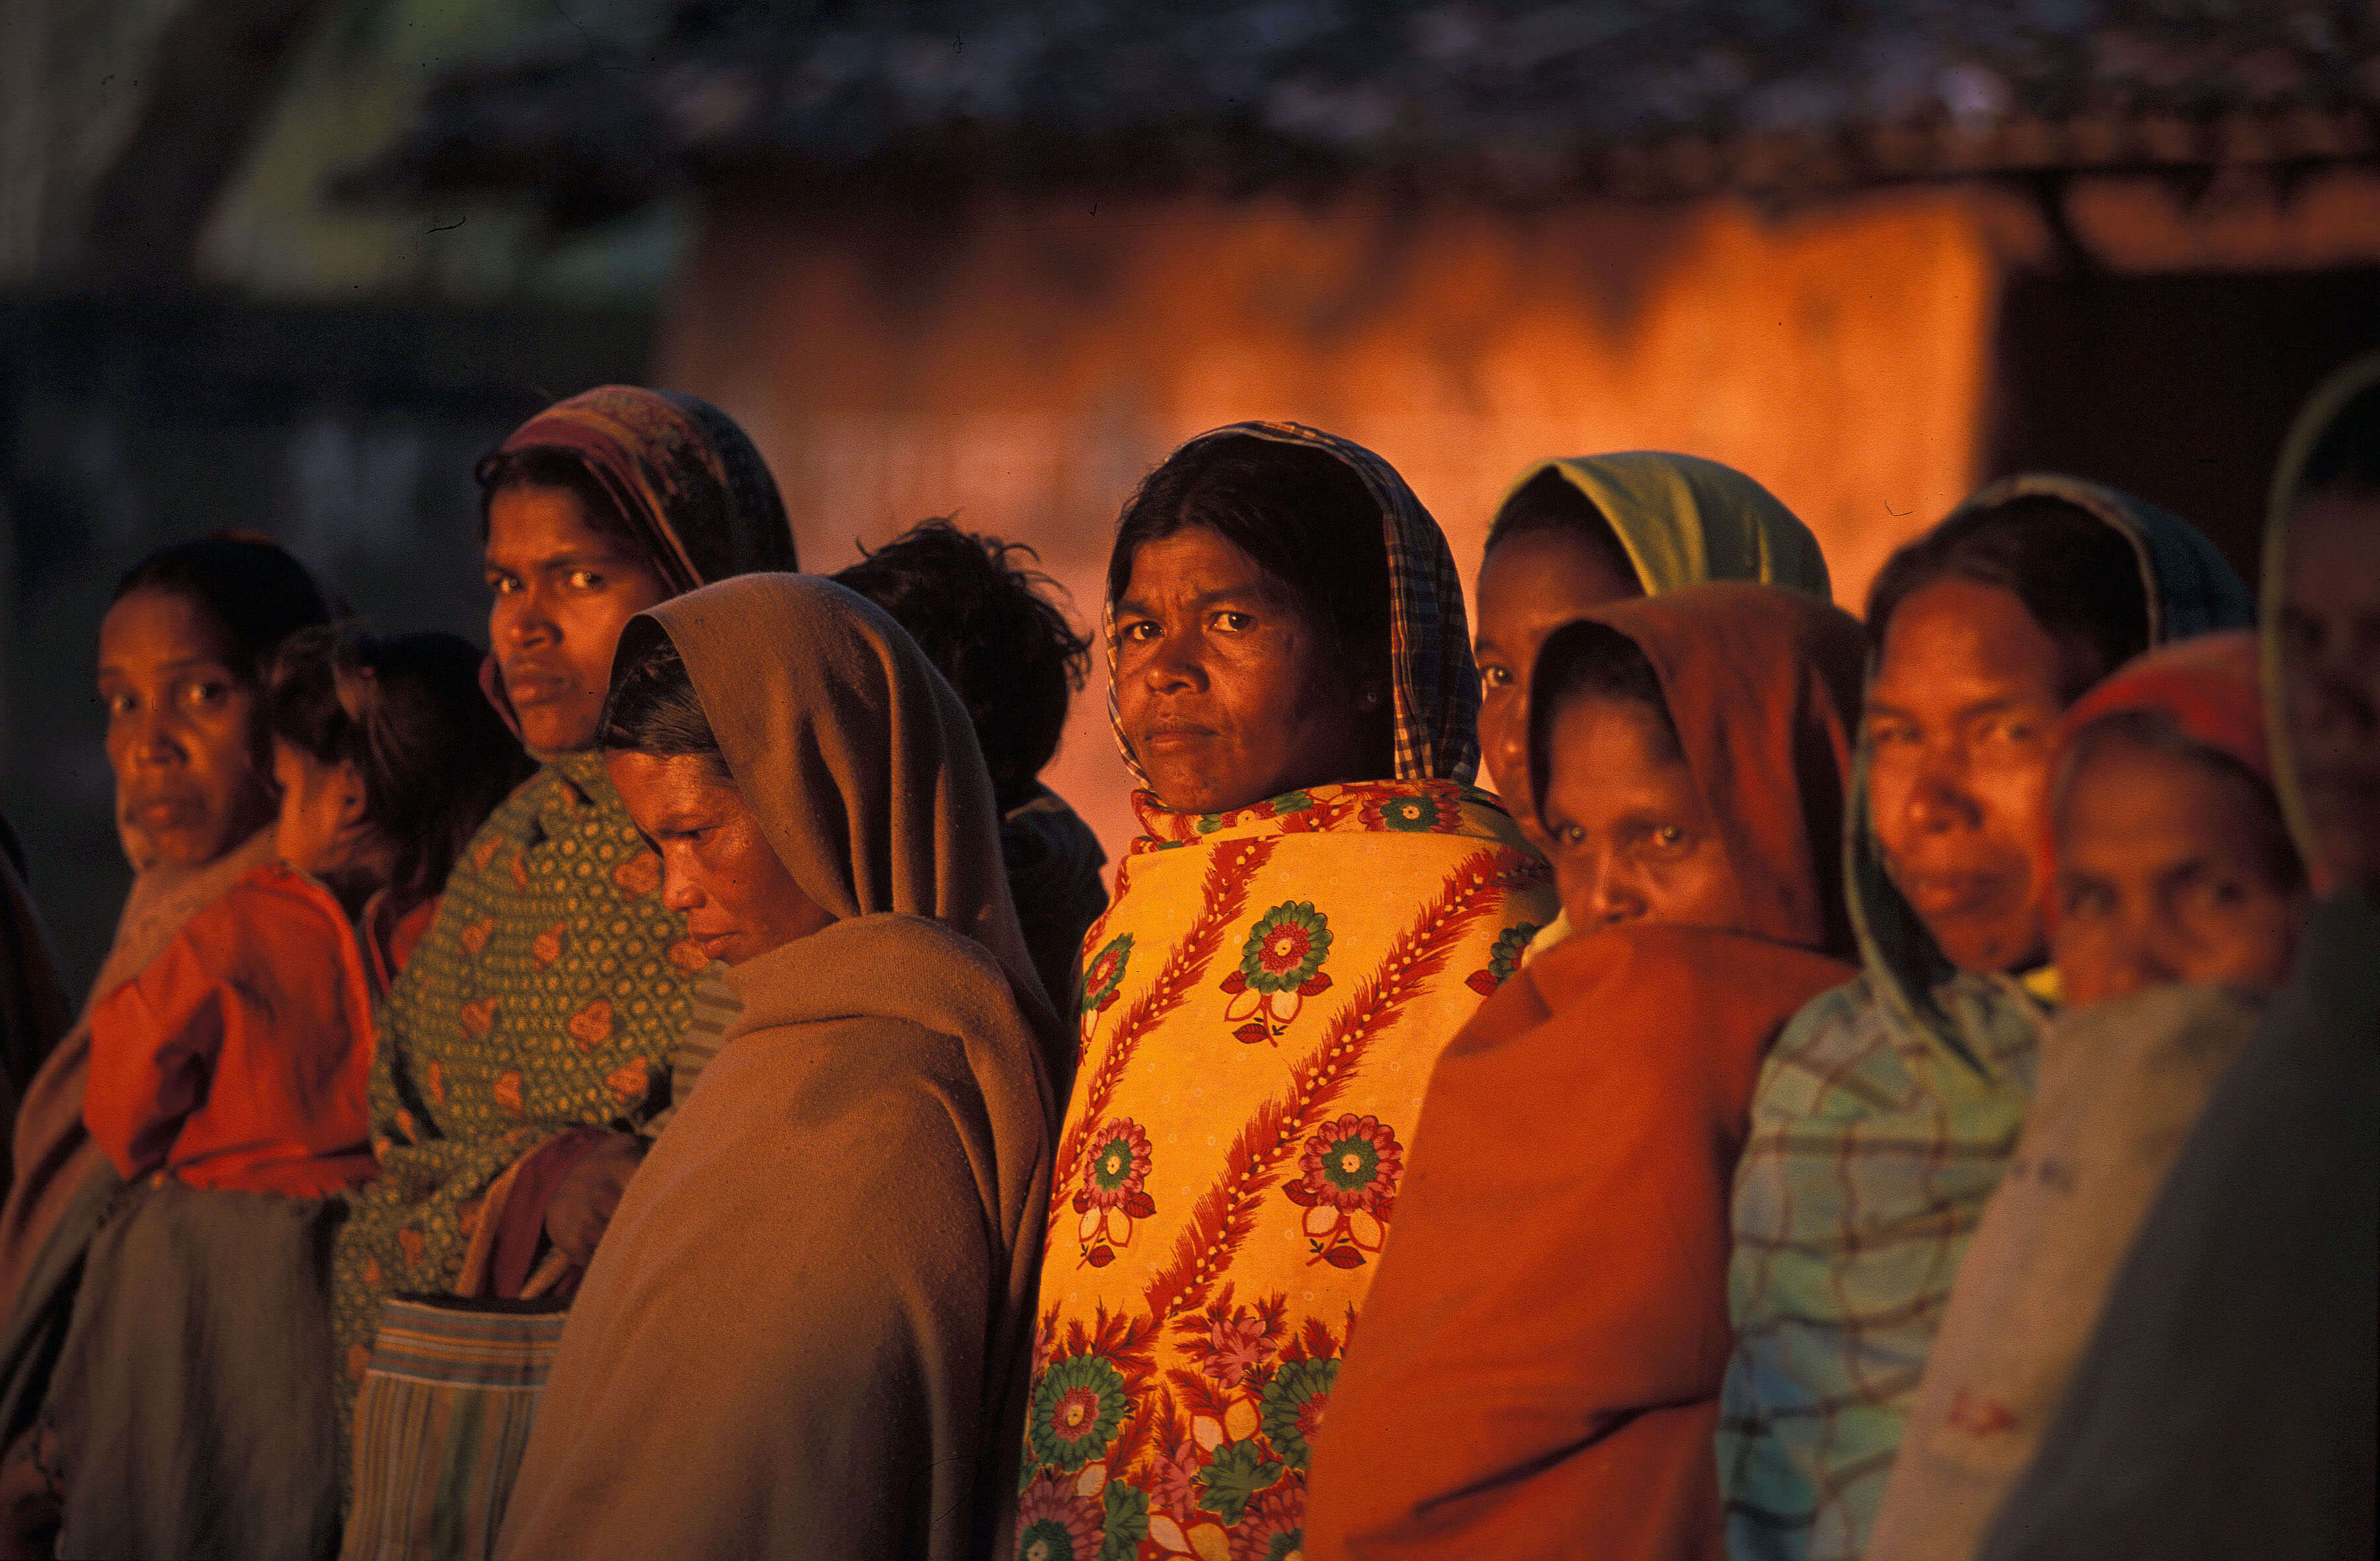 India's Third Gender and The Kaushal Problem